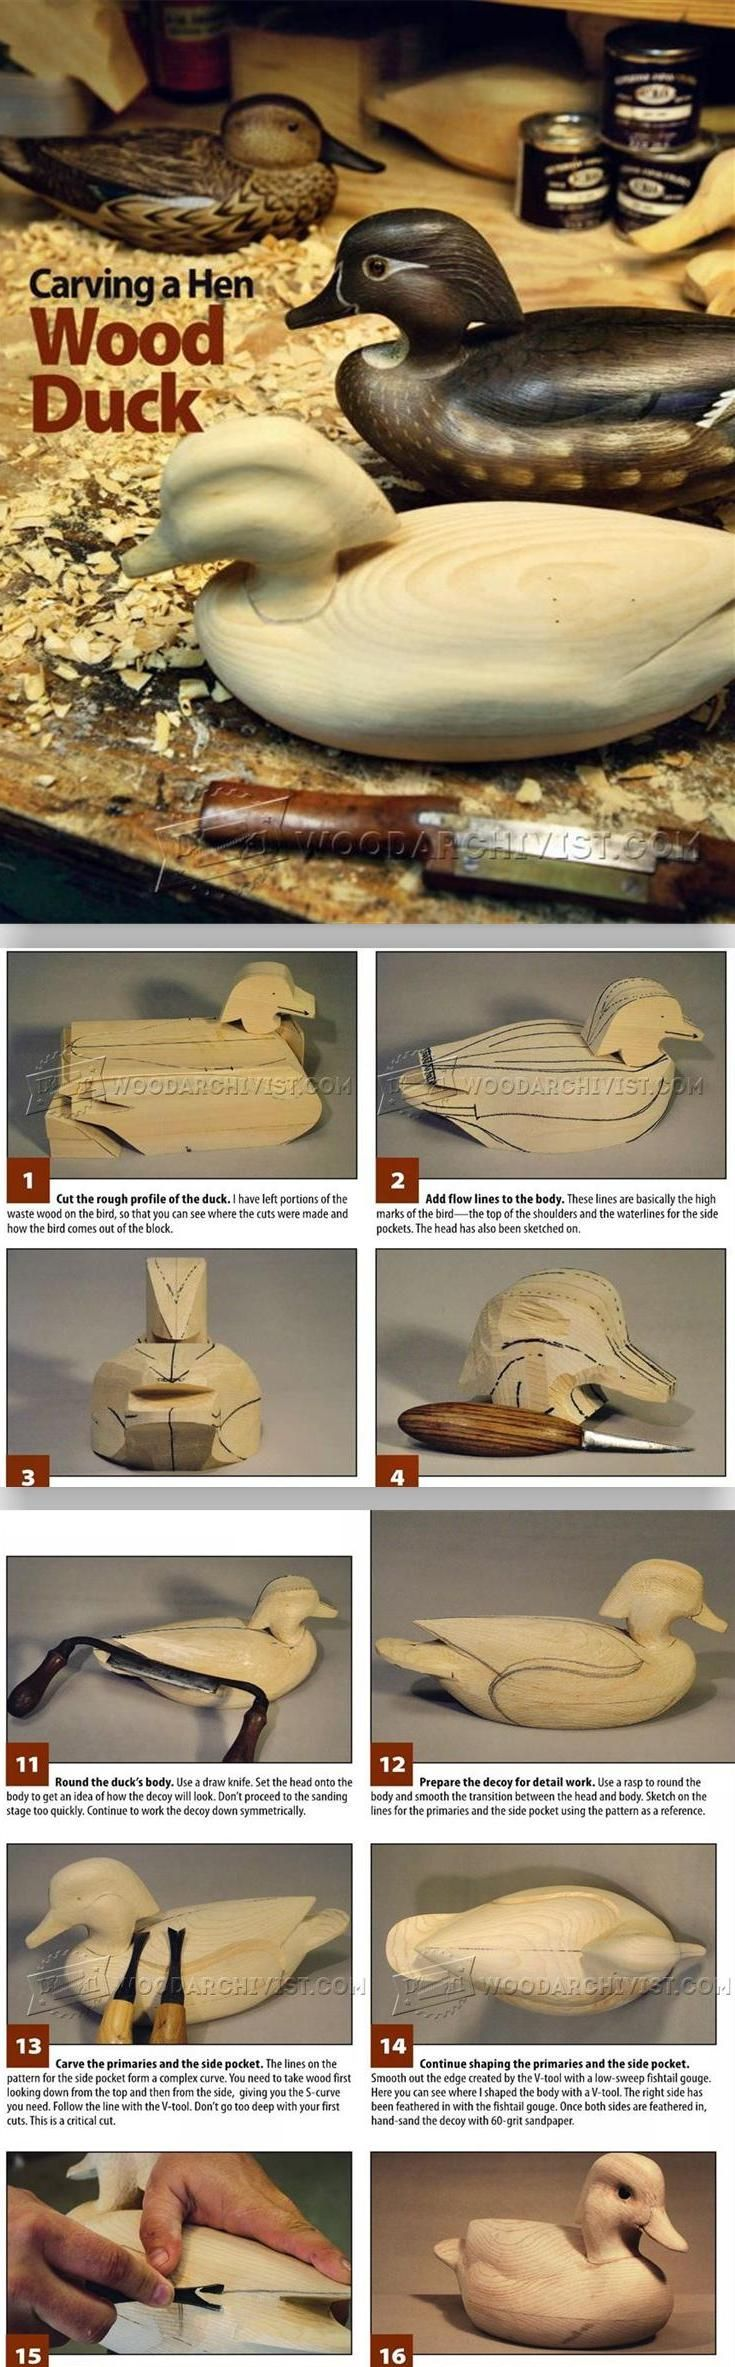 Duck Carving - Wood Carving Patterns and Techniques | WoodArchivist.com